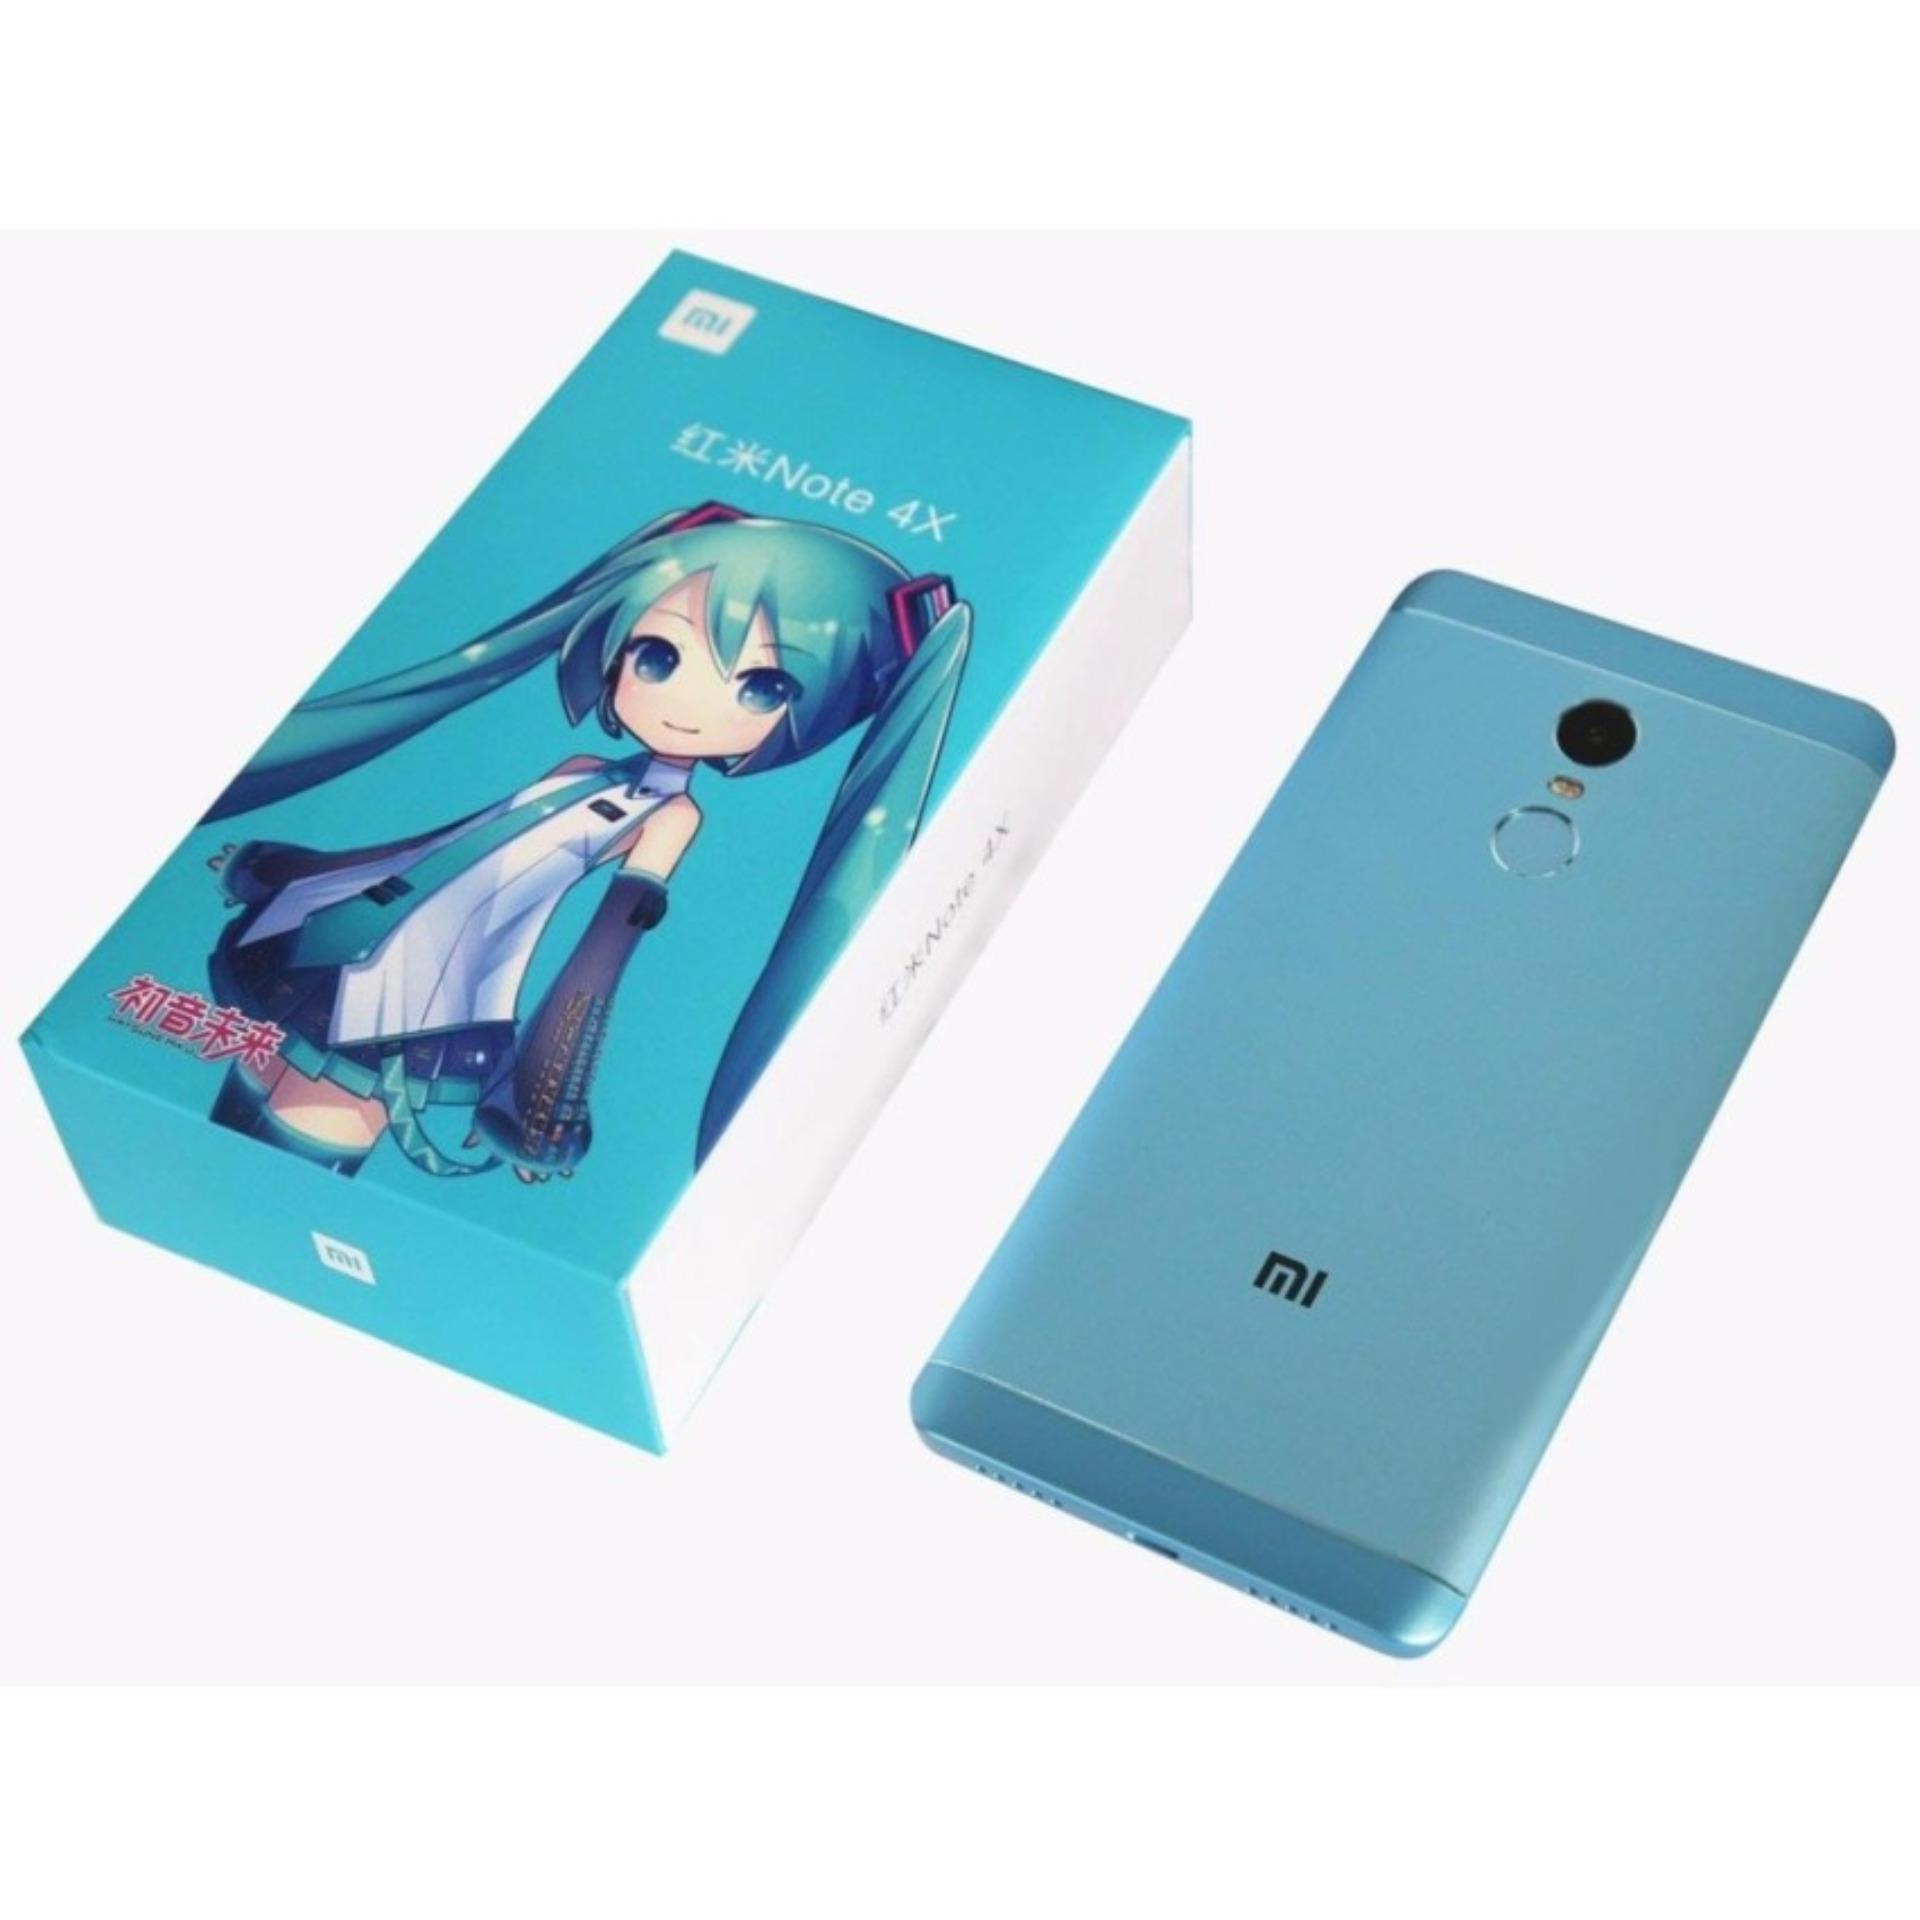 Beli Xiaomi Redmi Note 4X Snapdragon Ram 3 Gb 32 Gb Blue Limited Edition Baru